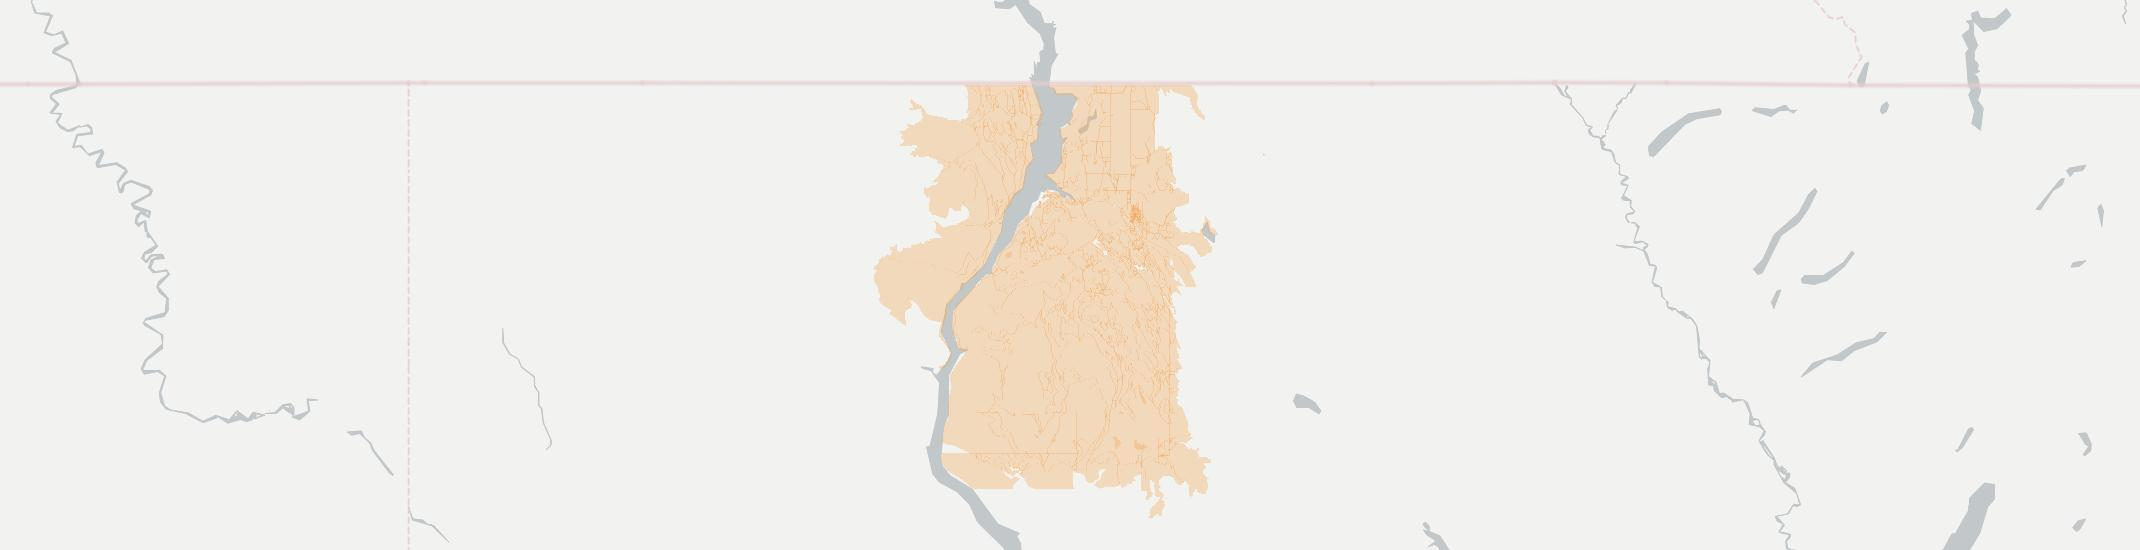 Rexford Internet Competition Map. Click for interactive map.